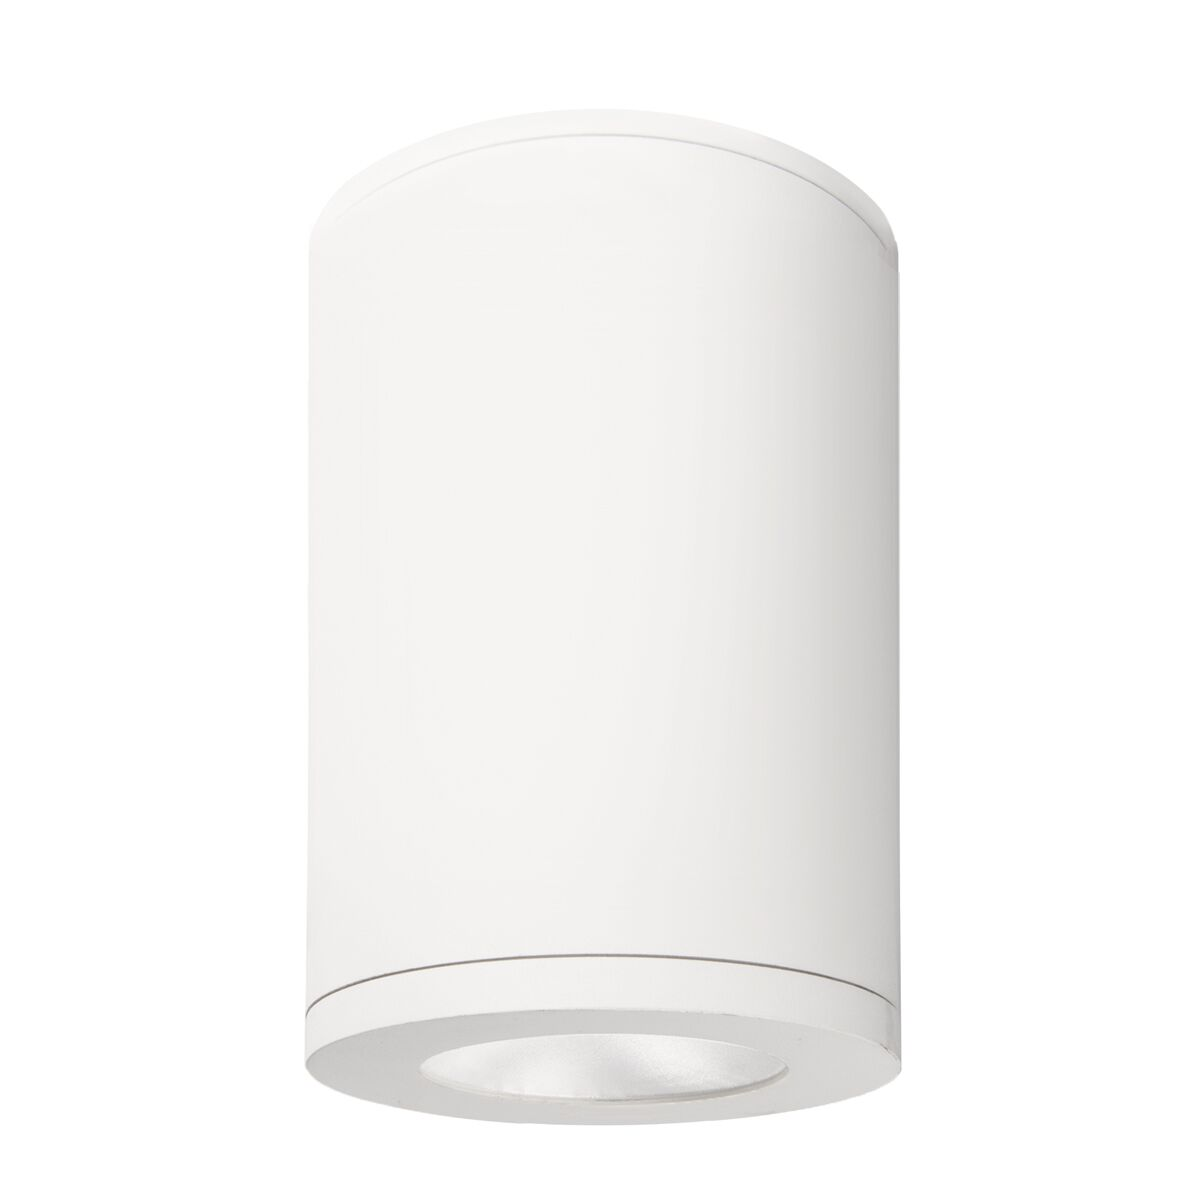 Janice 1-Light LED Flush Mount Lens Degree: Narrow, Fixture Finish: White